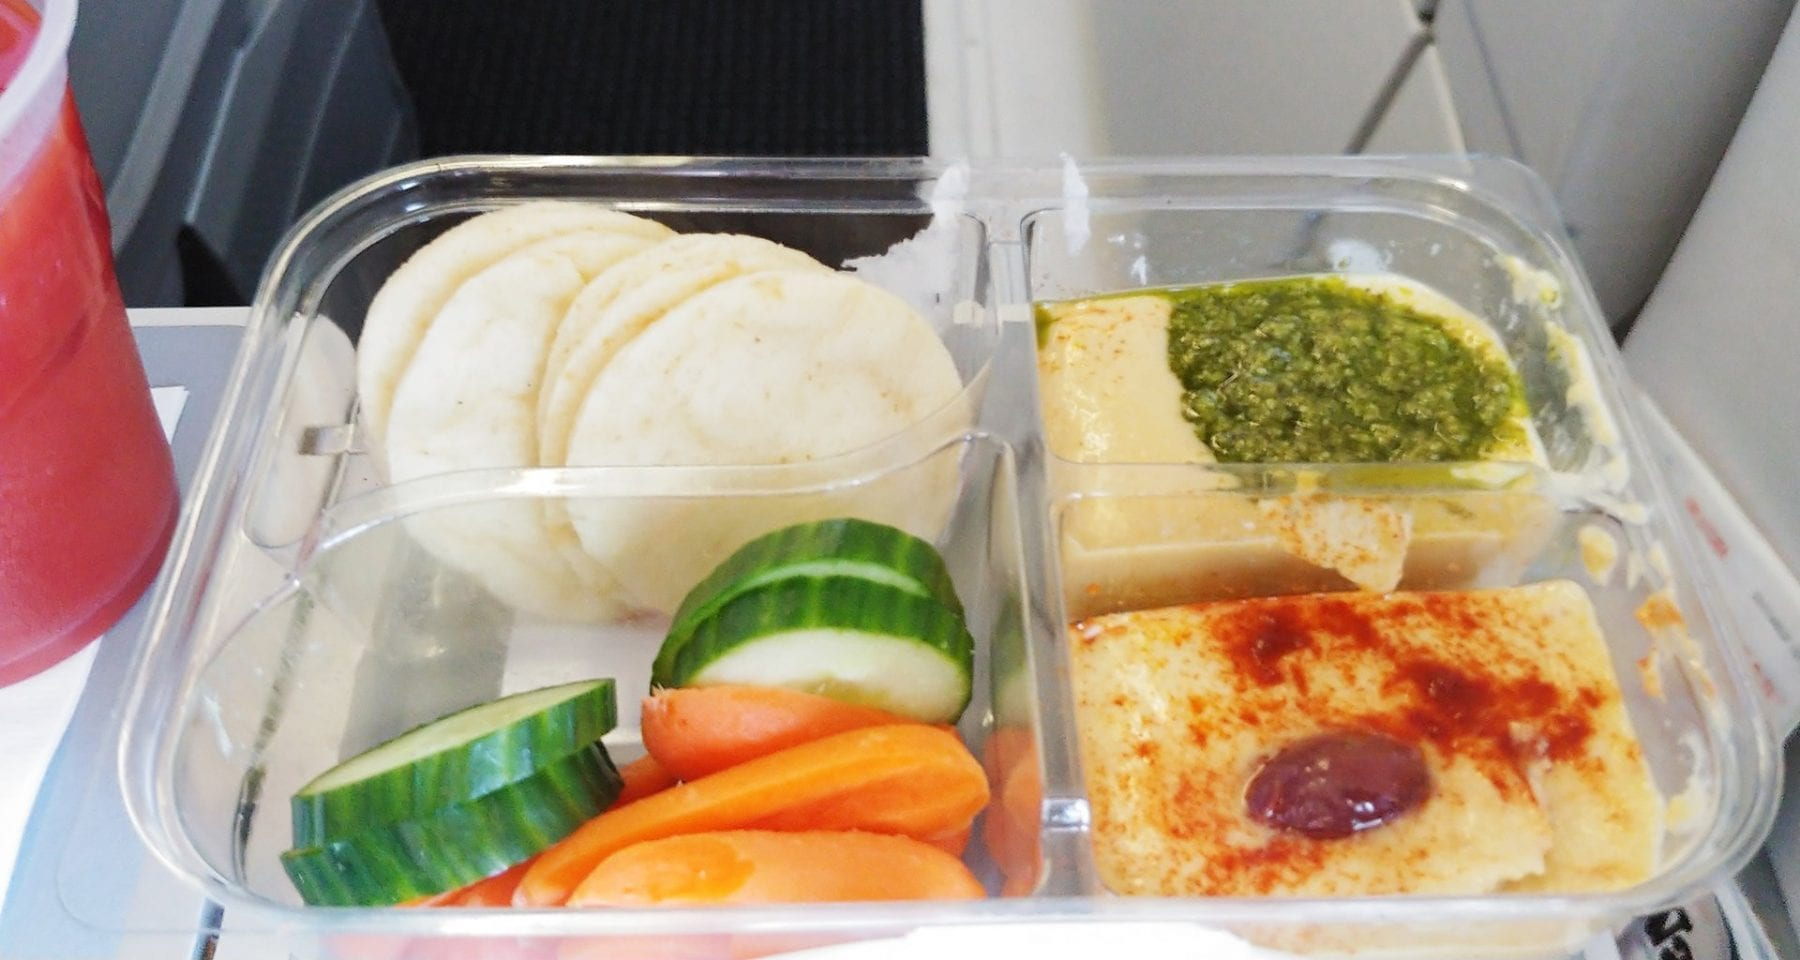 American airlines hummus meal